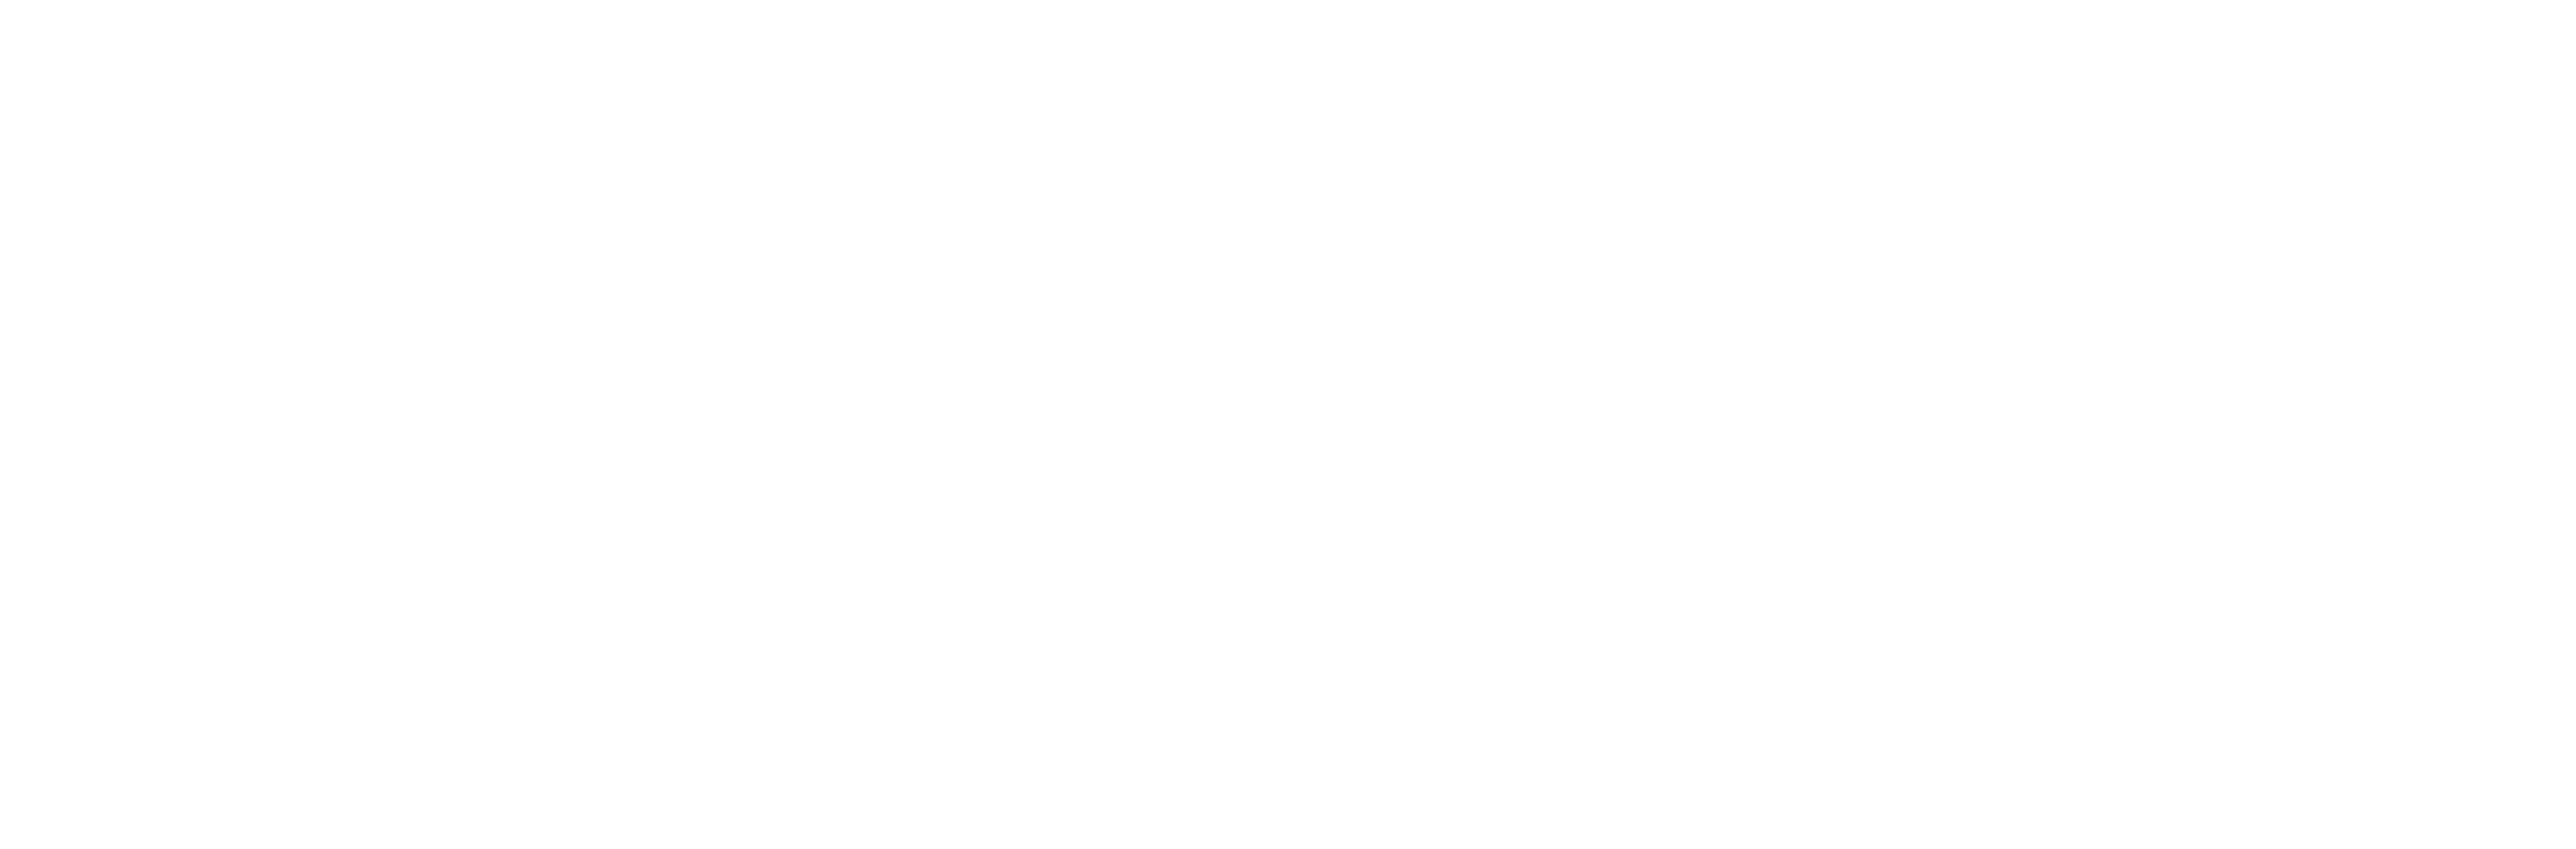 Pirates Cave Chandlery